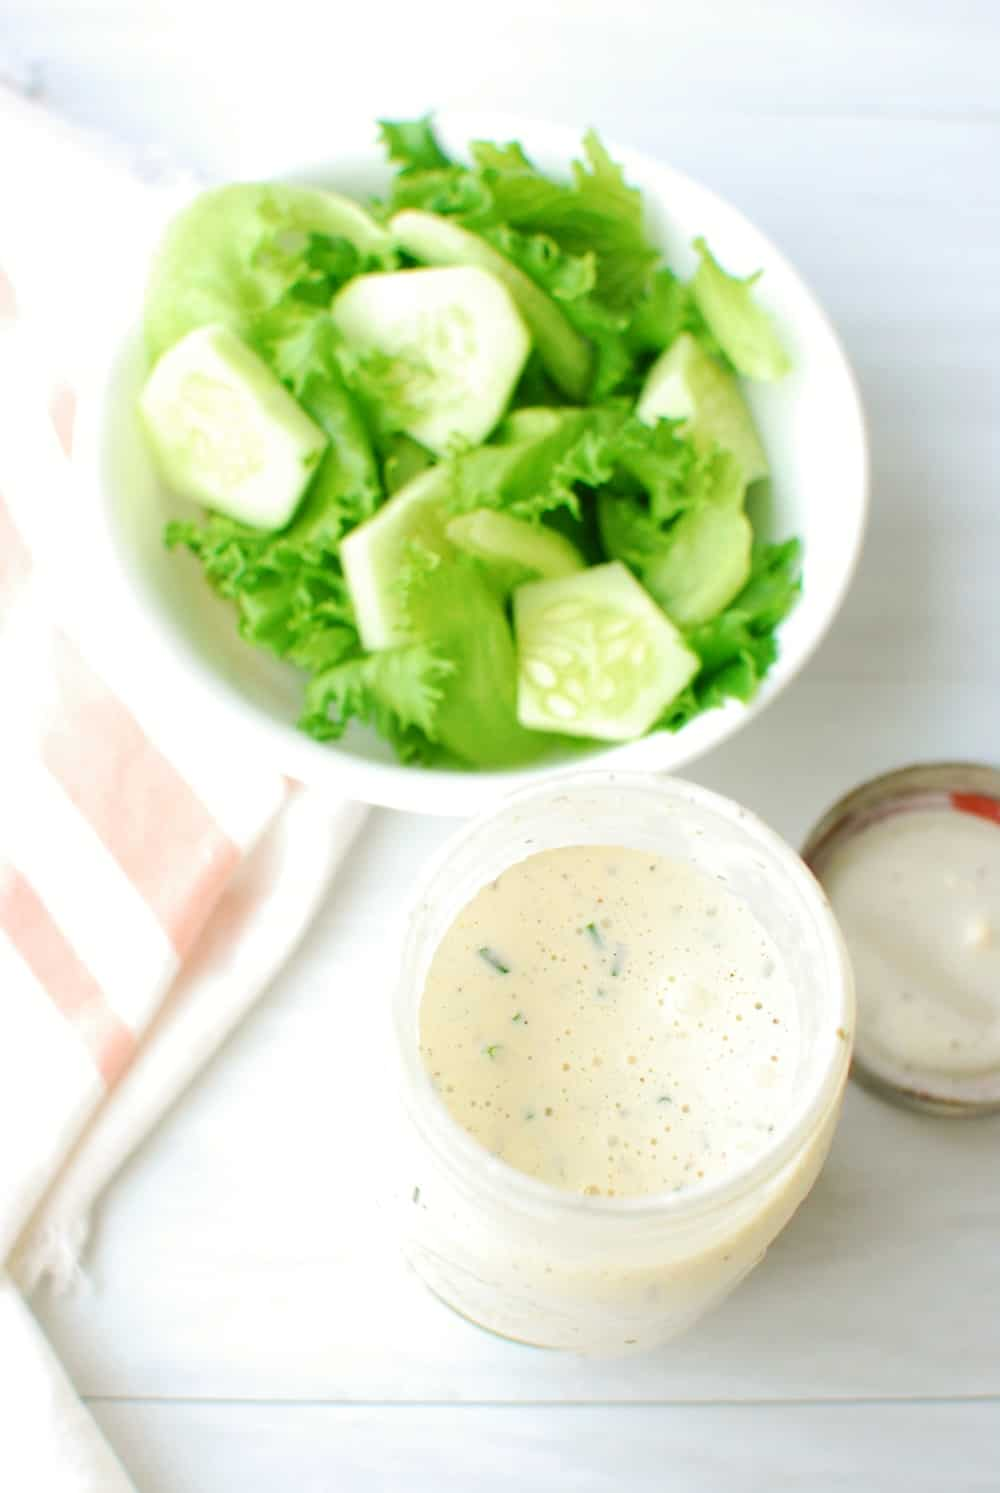 A jar of dairy free ranch dressing next to a bowl of salad